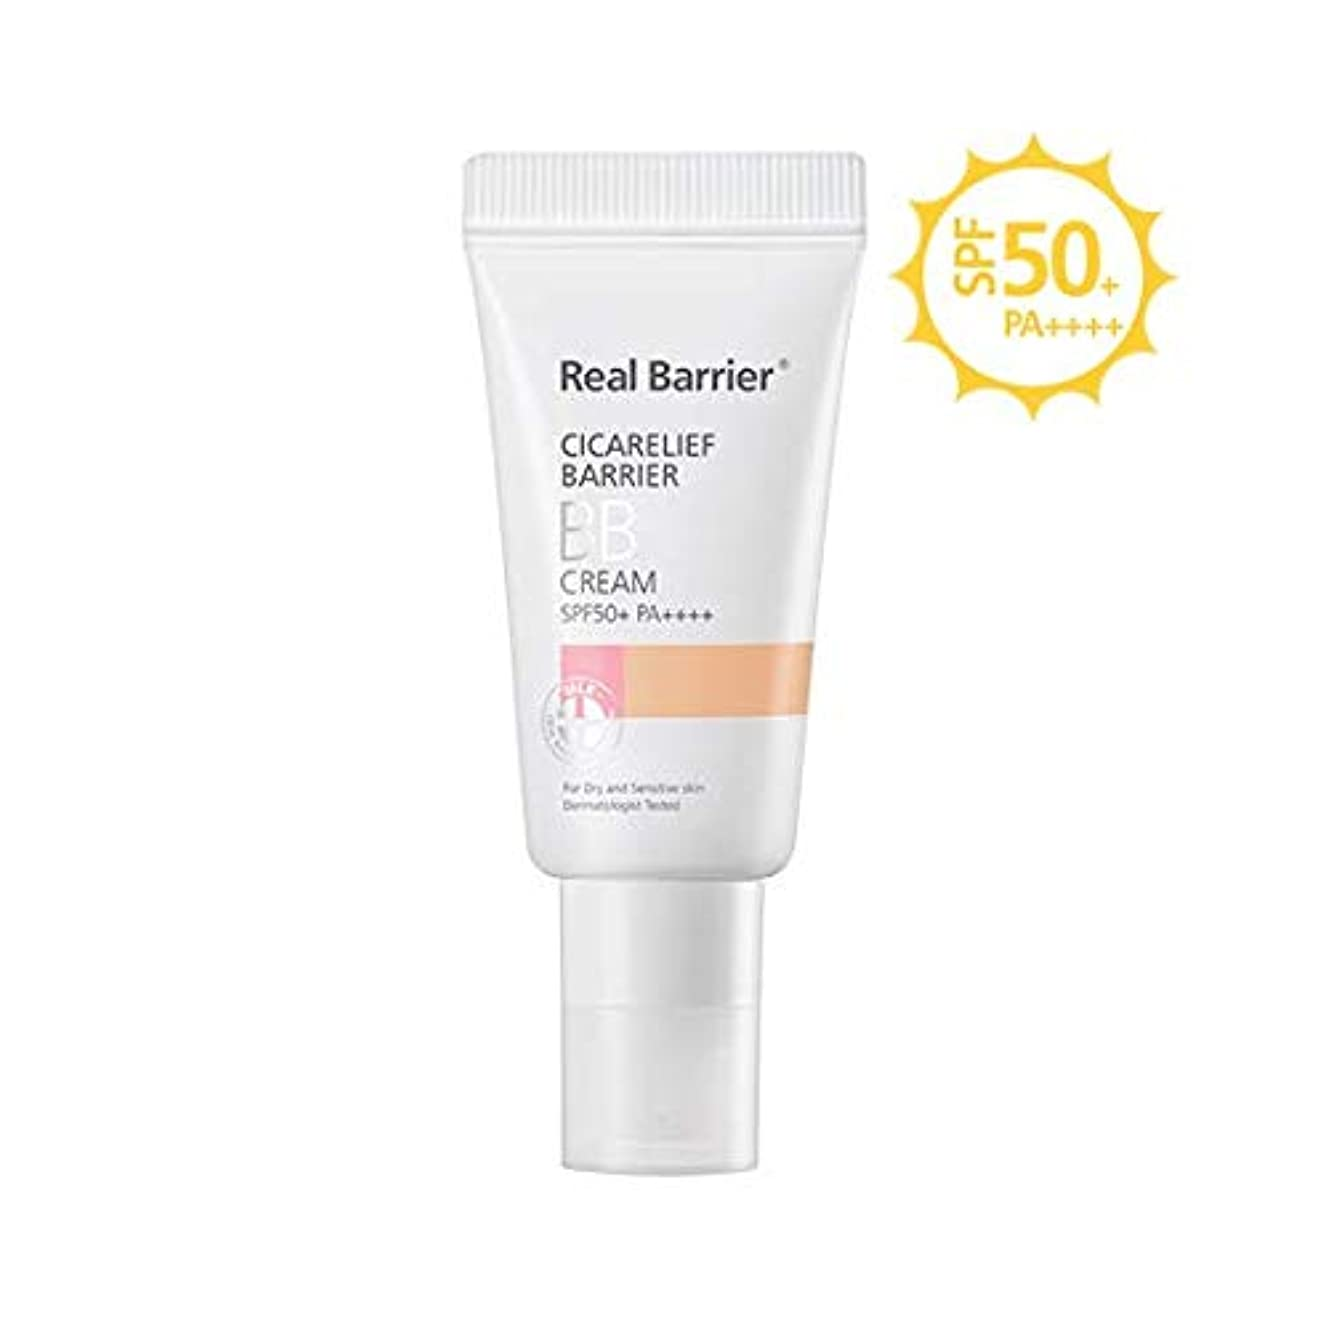 ATOPALM Real Barrier リアル·バリア シカリュフ バリアー ヴィヴィ クリーム SPF50 + PA ++++ 50ml / REAL BARIER CICARELIEF BARRIER BB CREAM...